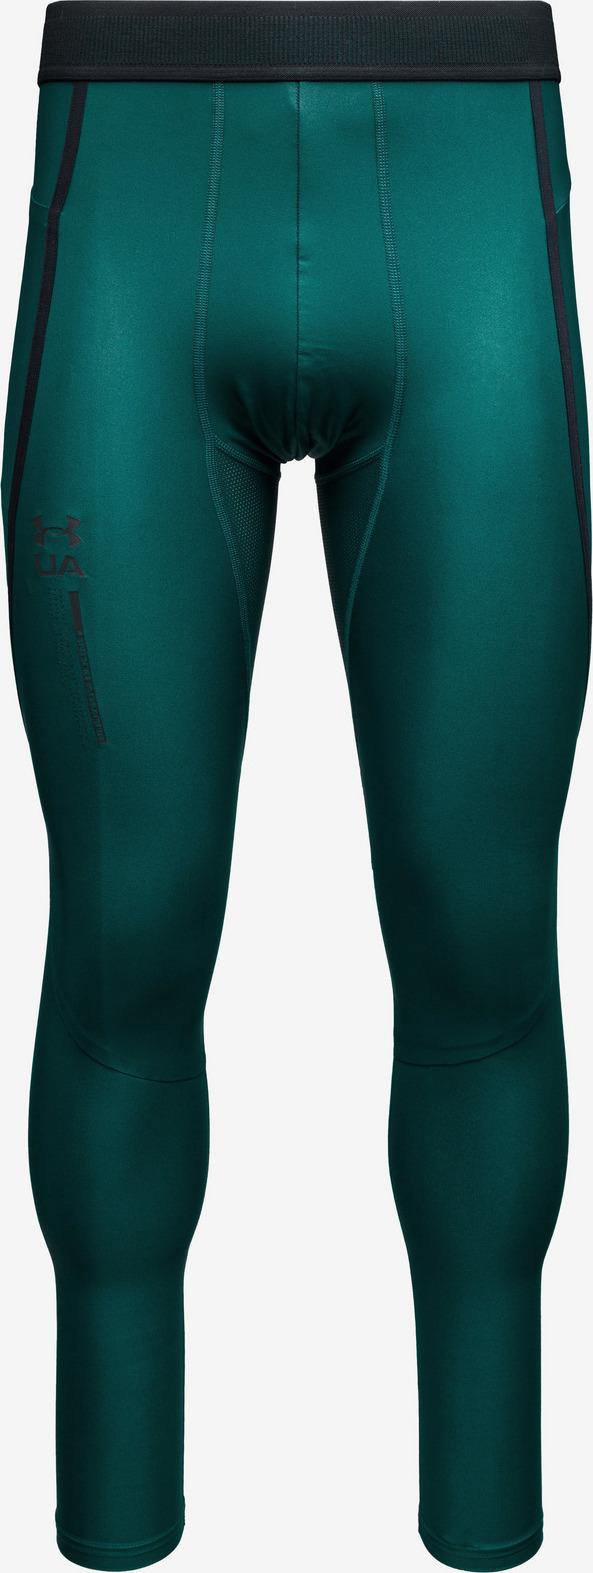 Isochill Perforation Legíny Under Armour